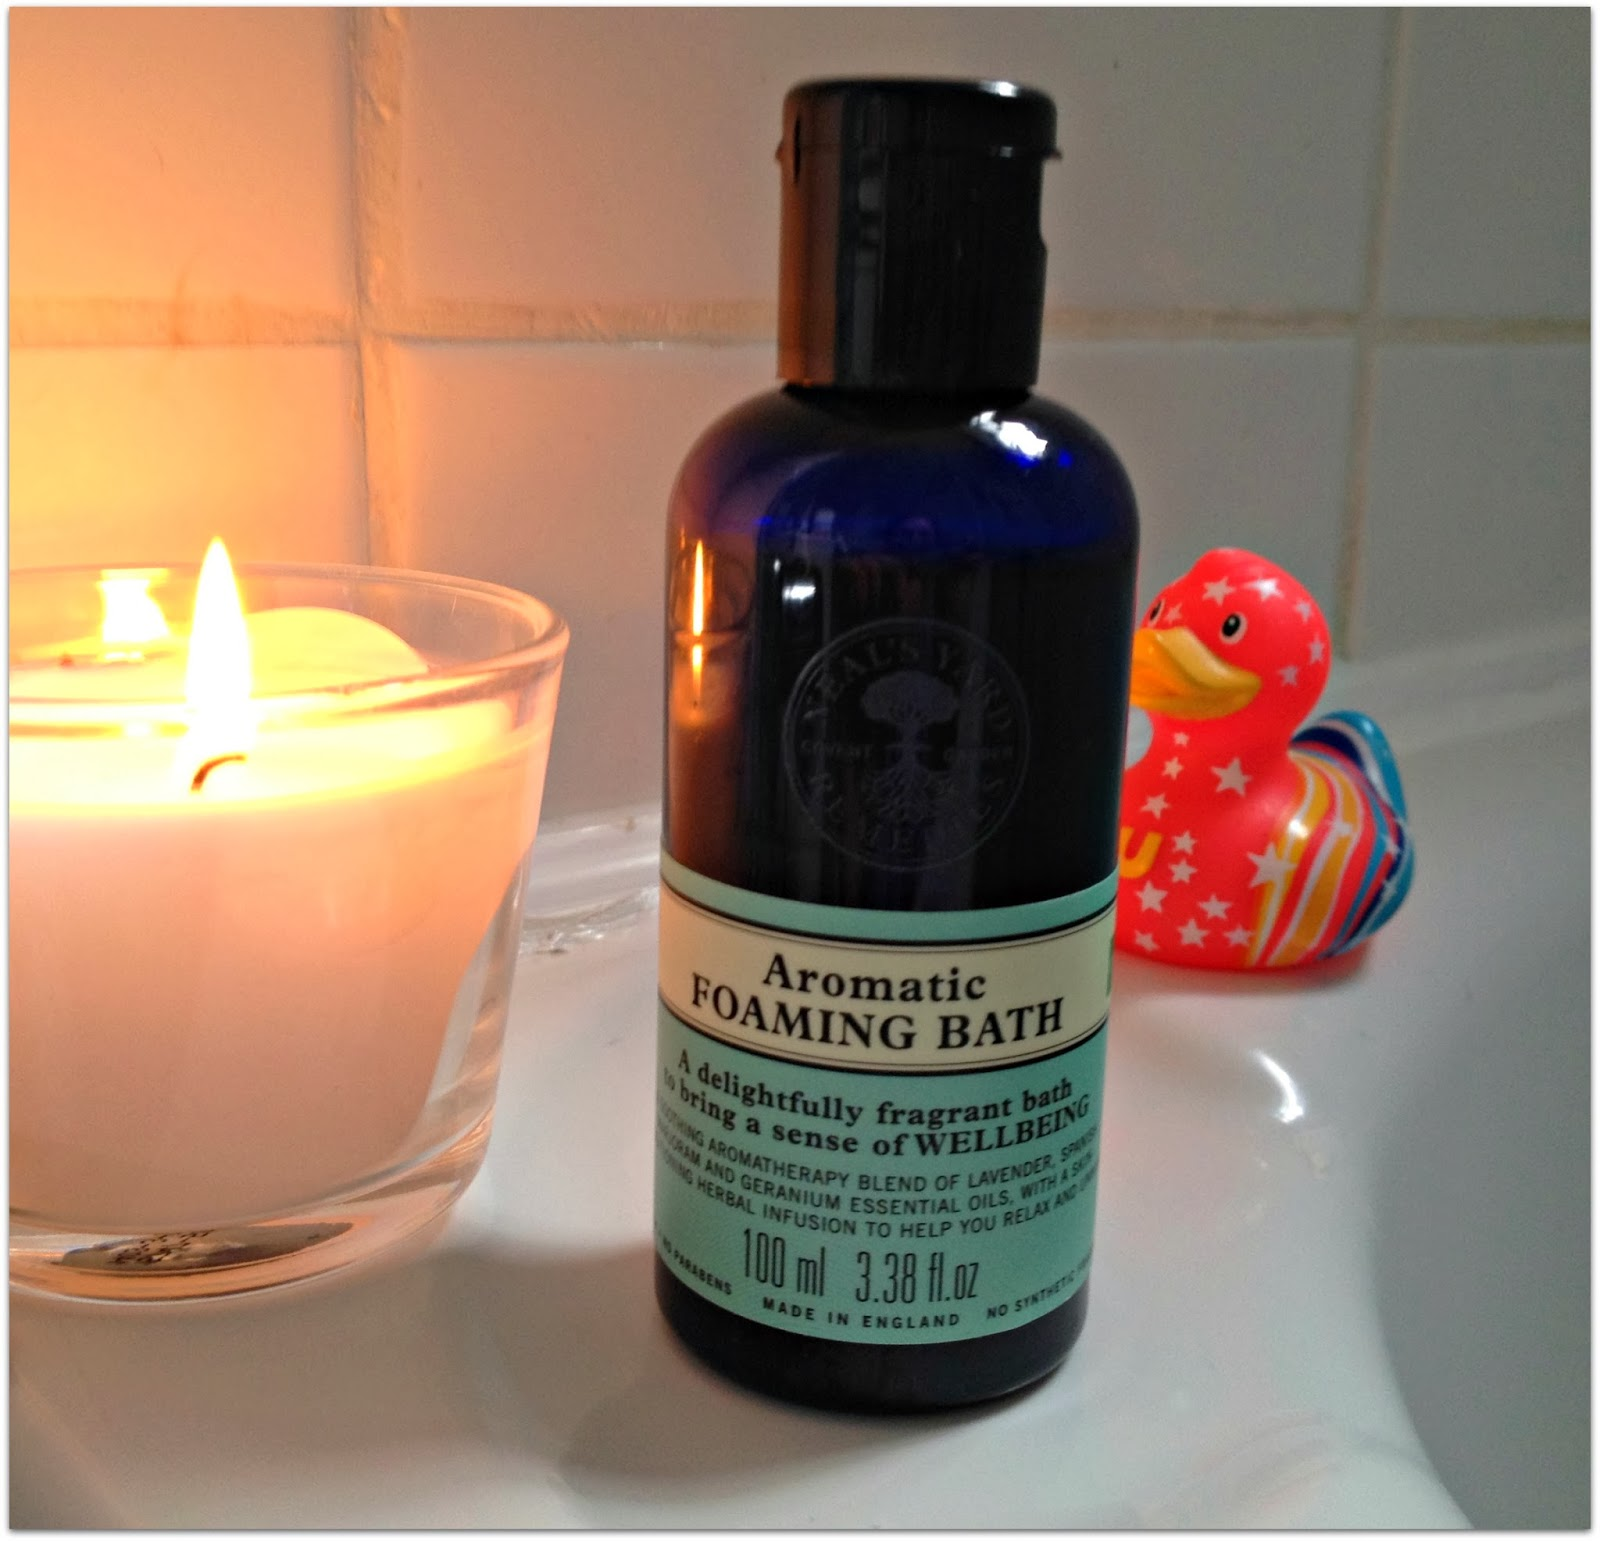 Neal's Yard Aromatic Foaming Bath